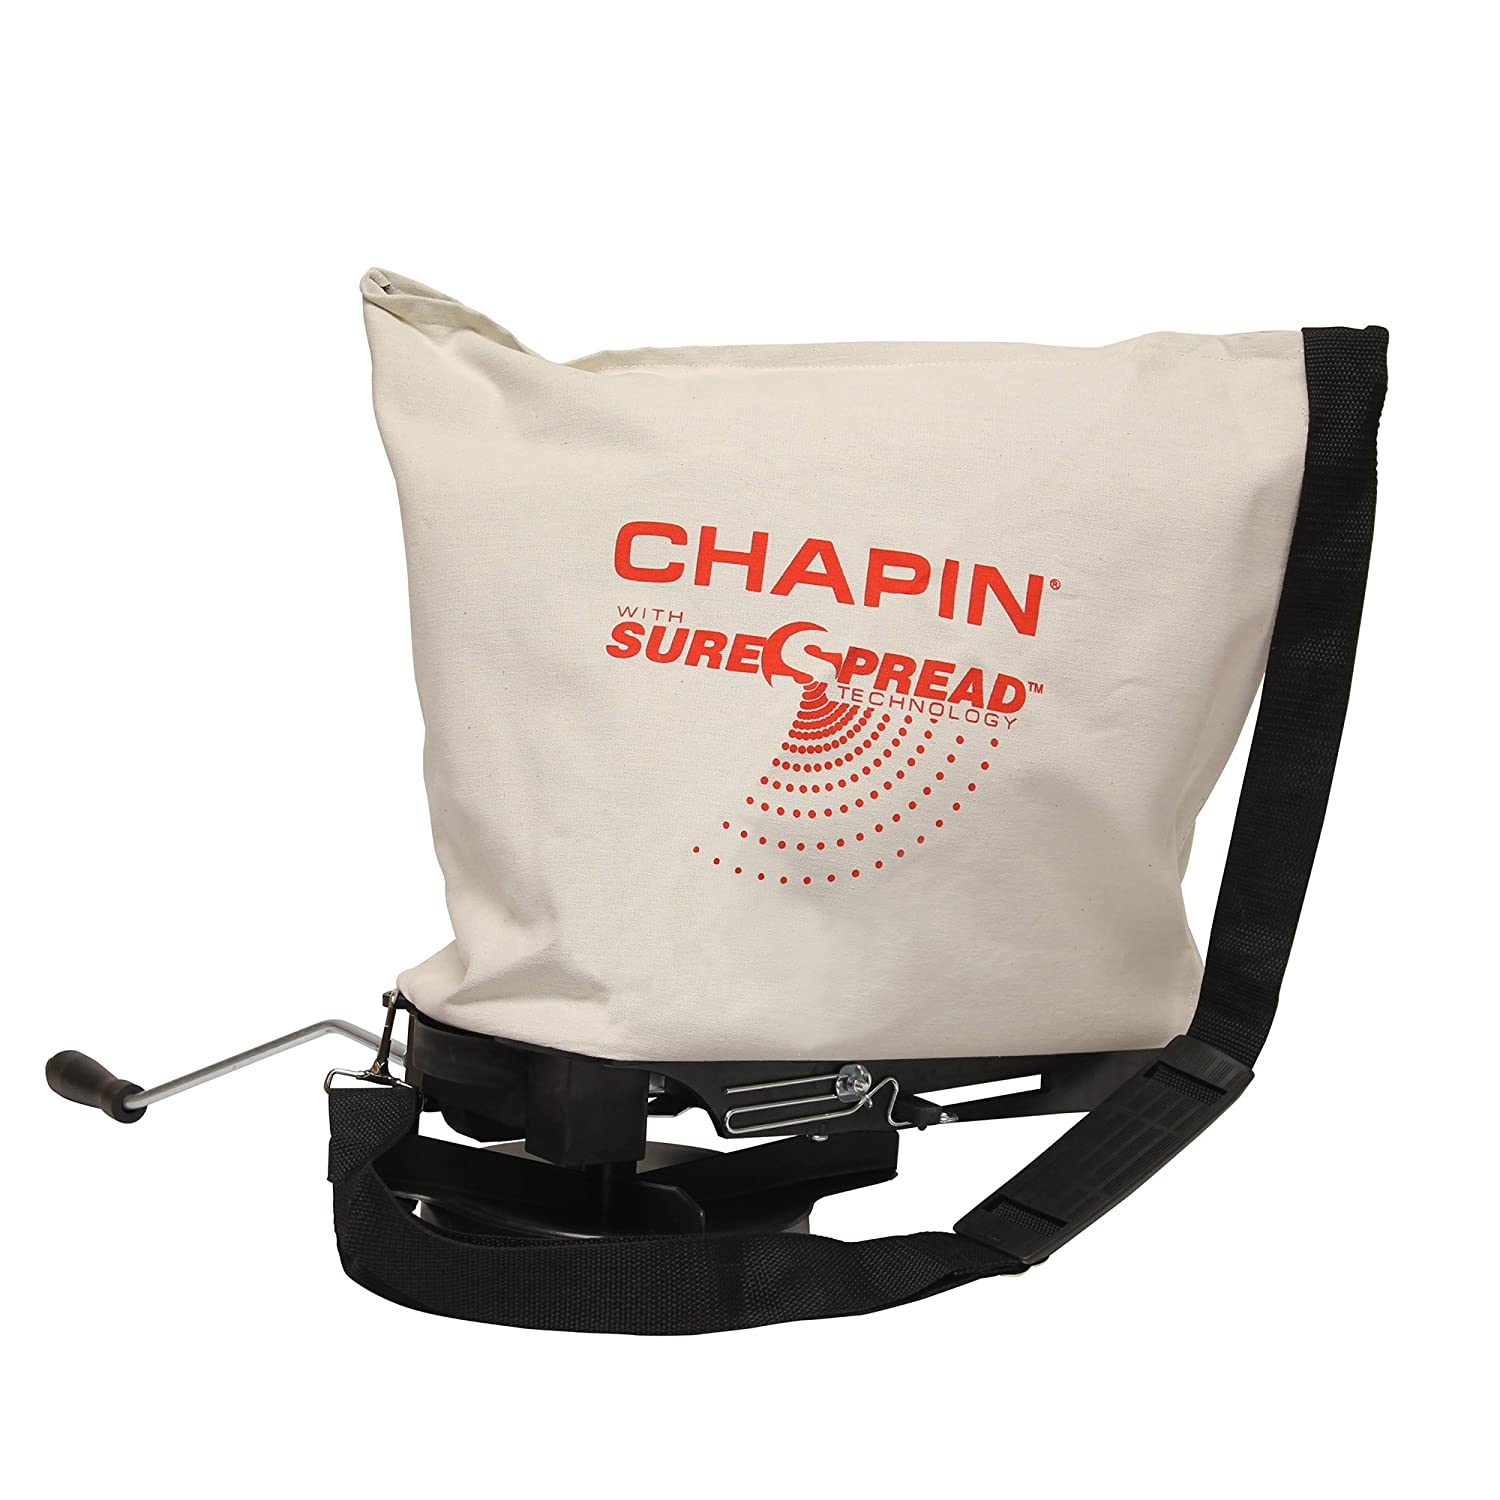 Chapin 84600A 25-Pound Professional SureSpread Bag Seeder Chapin International